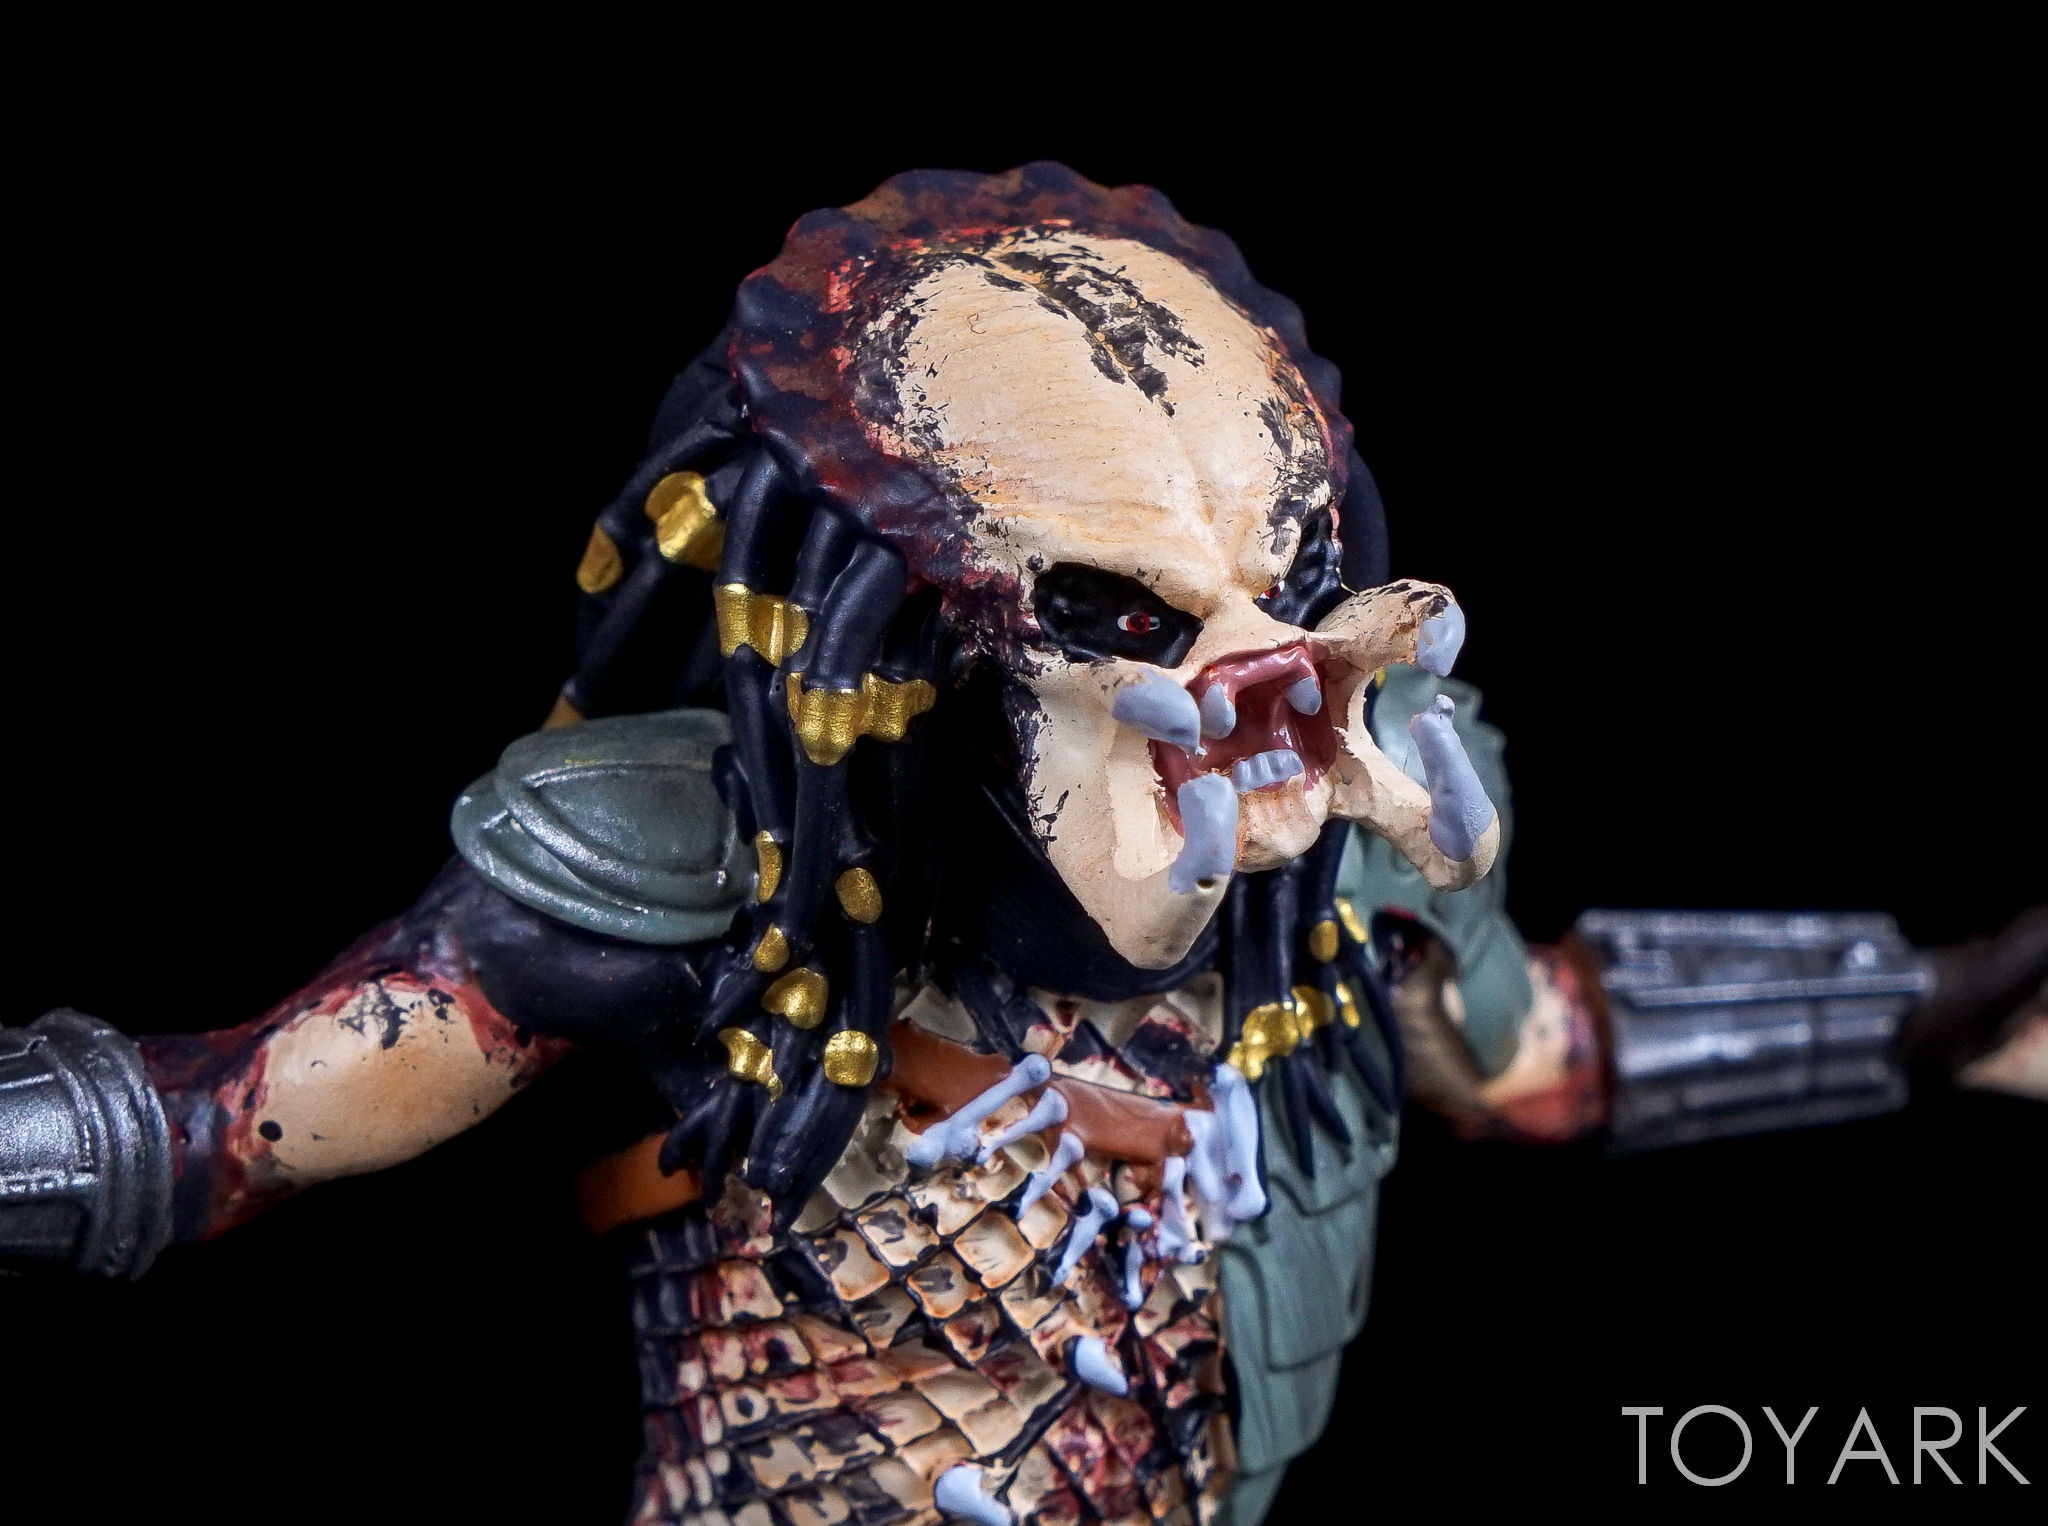 http://news.toyark.com/wp-content/uploads/sites/4/2017/02/Eaglemoss-Aliens-and-Predator-Statues-069.jpg